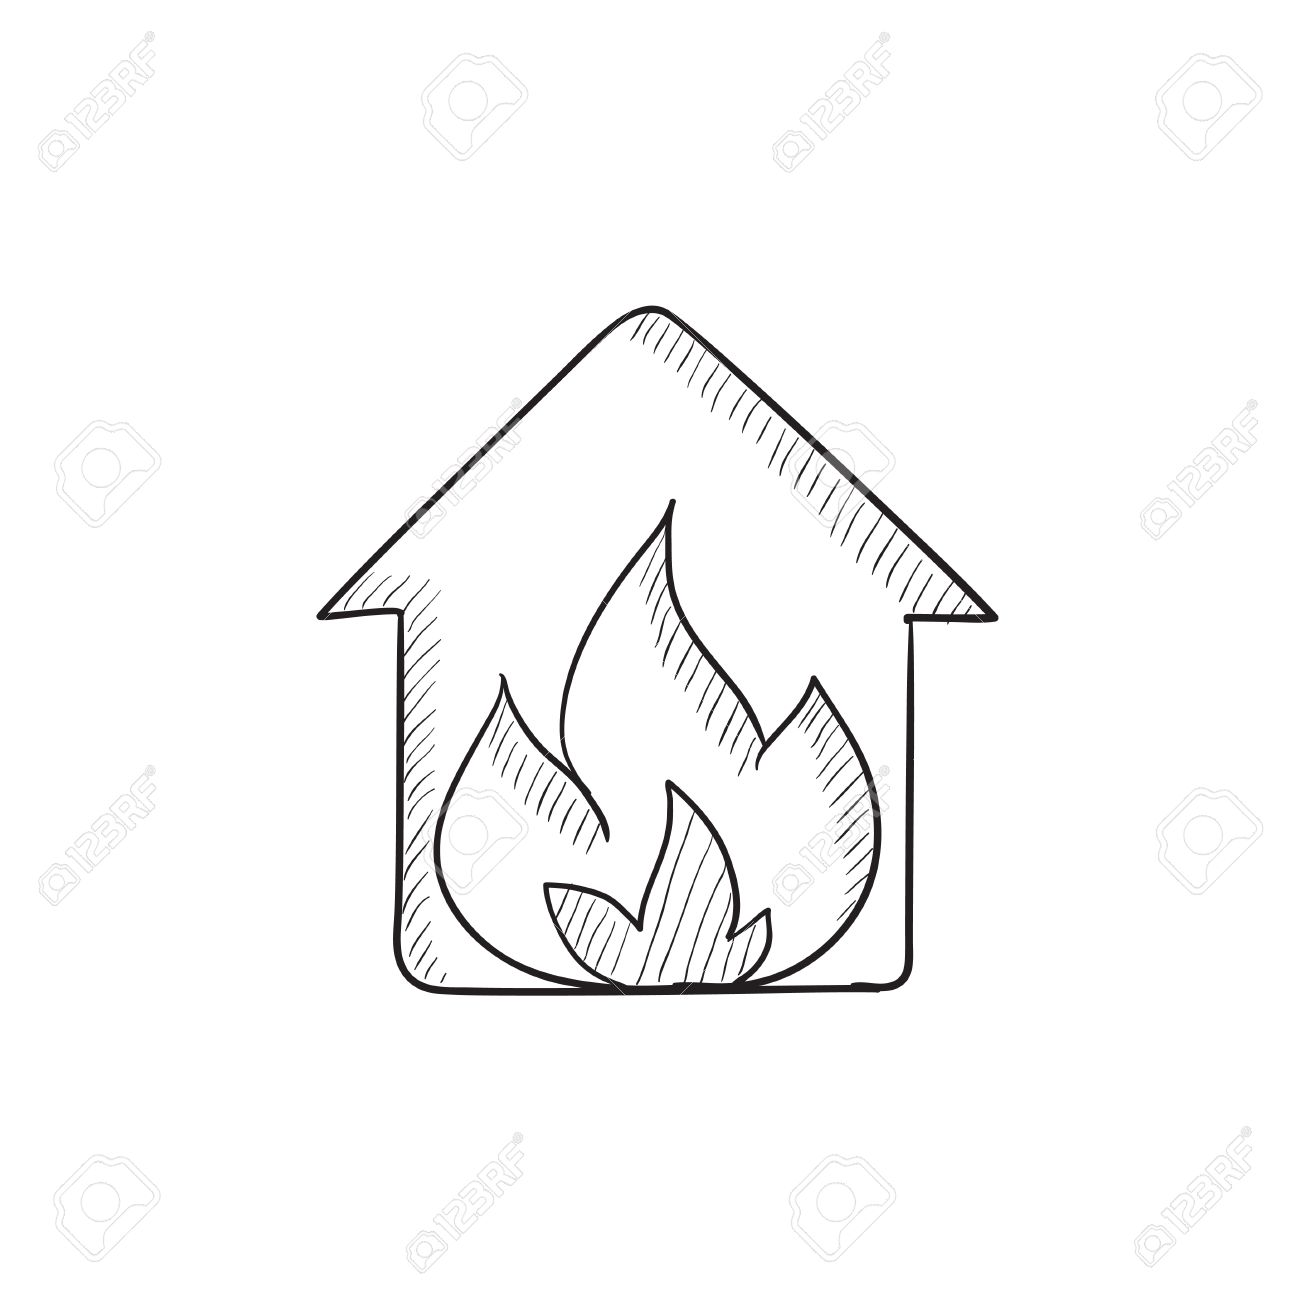 1300x1300 House On Fire Vector Sketch Icon Isolated On Background. Hand